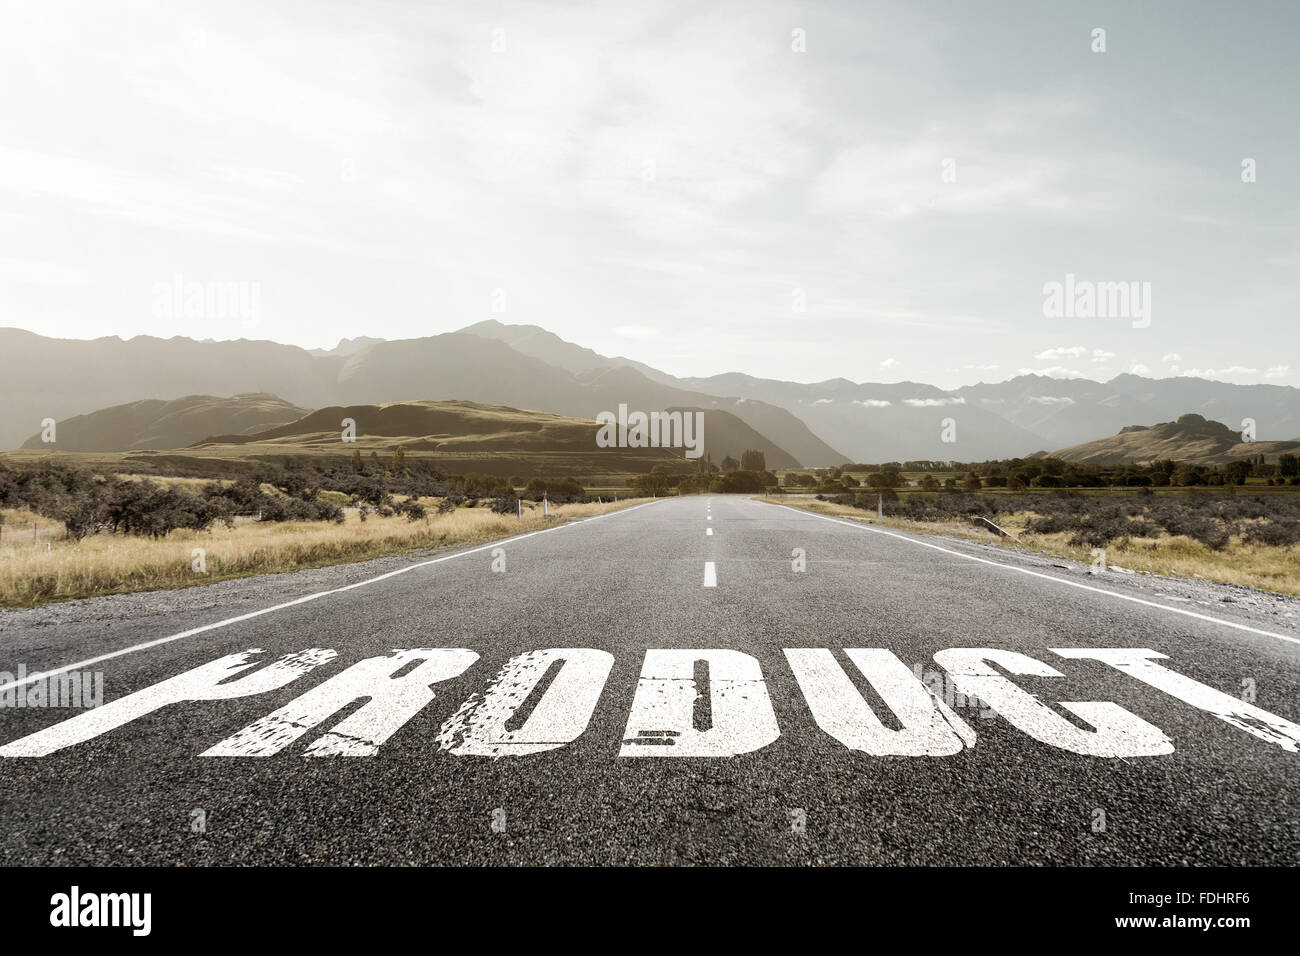 Concept image of Accounting Business Acronym PO Production Order written over road marking yellow paint line. Stock Photo